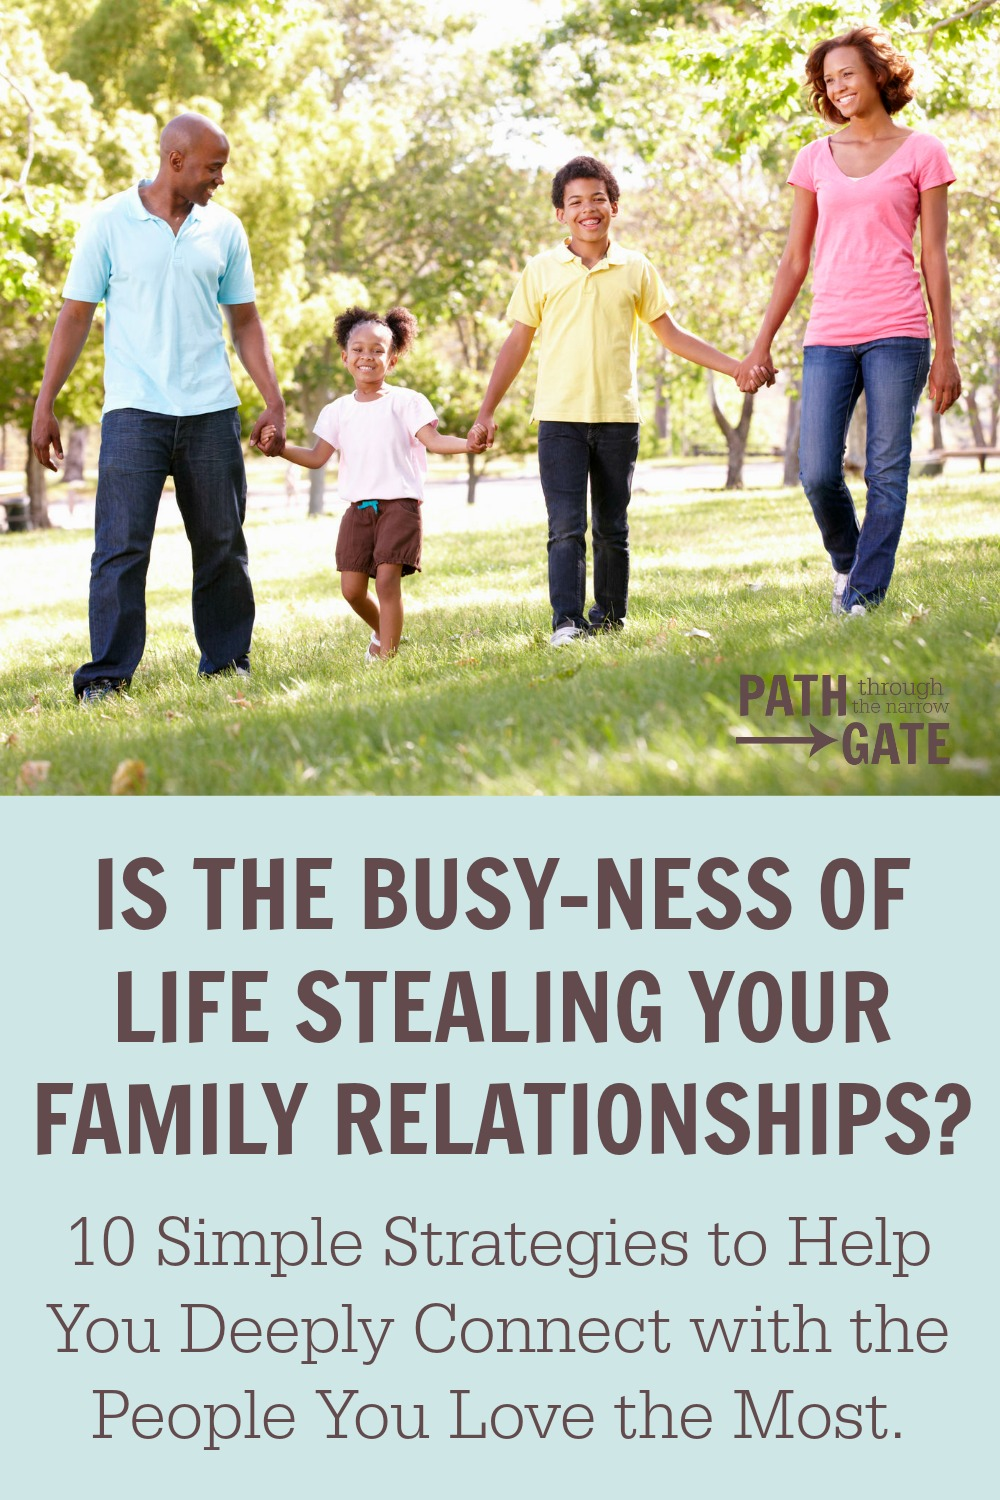 Free eBook! Your Road Map to Stronger Family Relationships